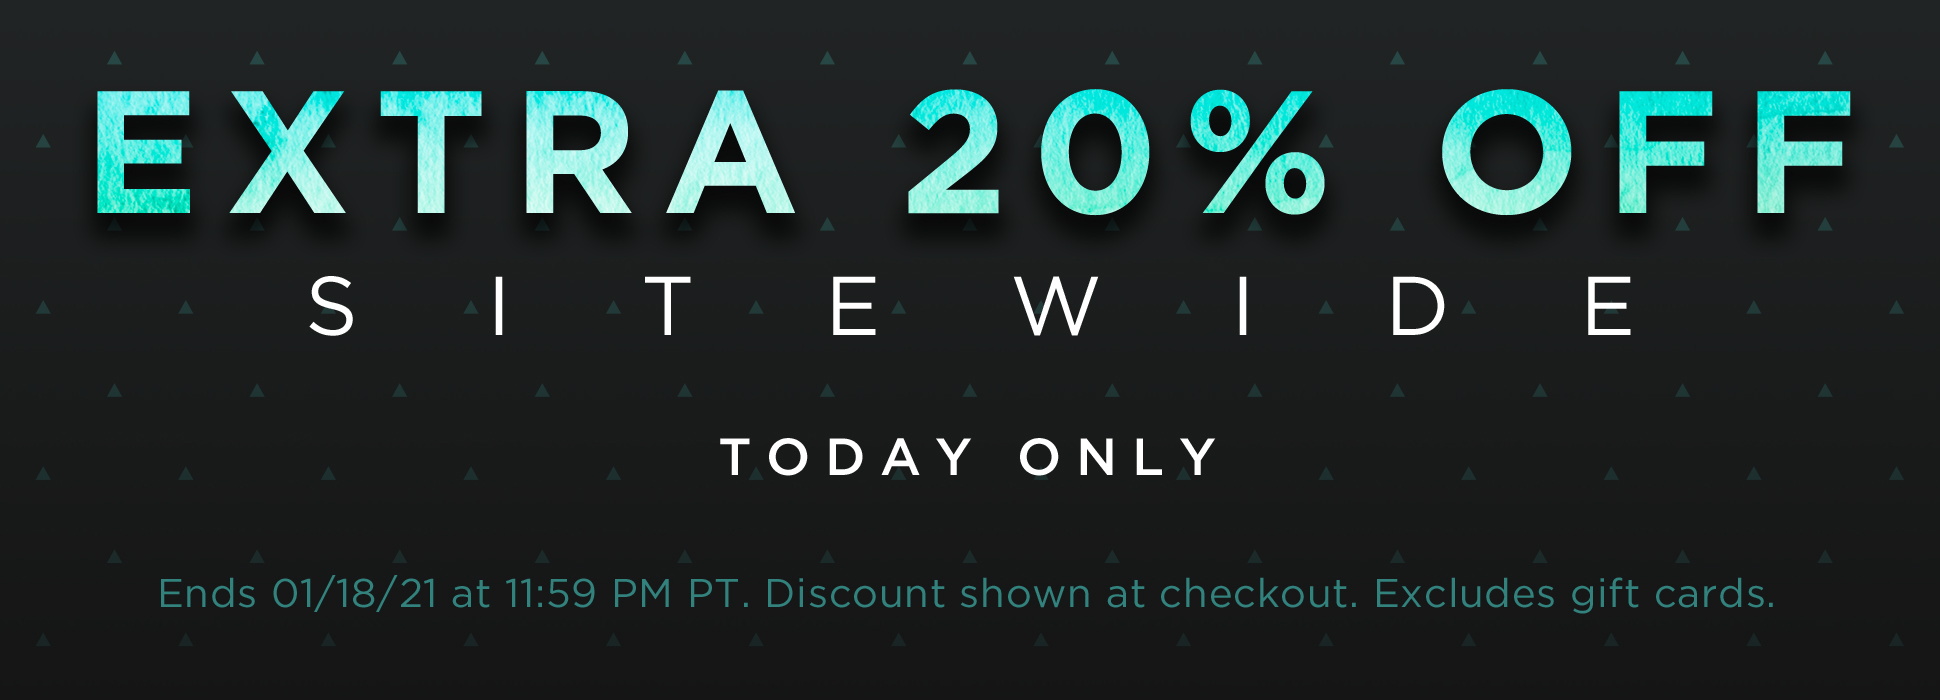 MLK sitewide 20% off (banners)